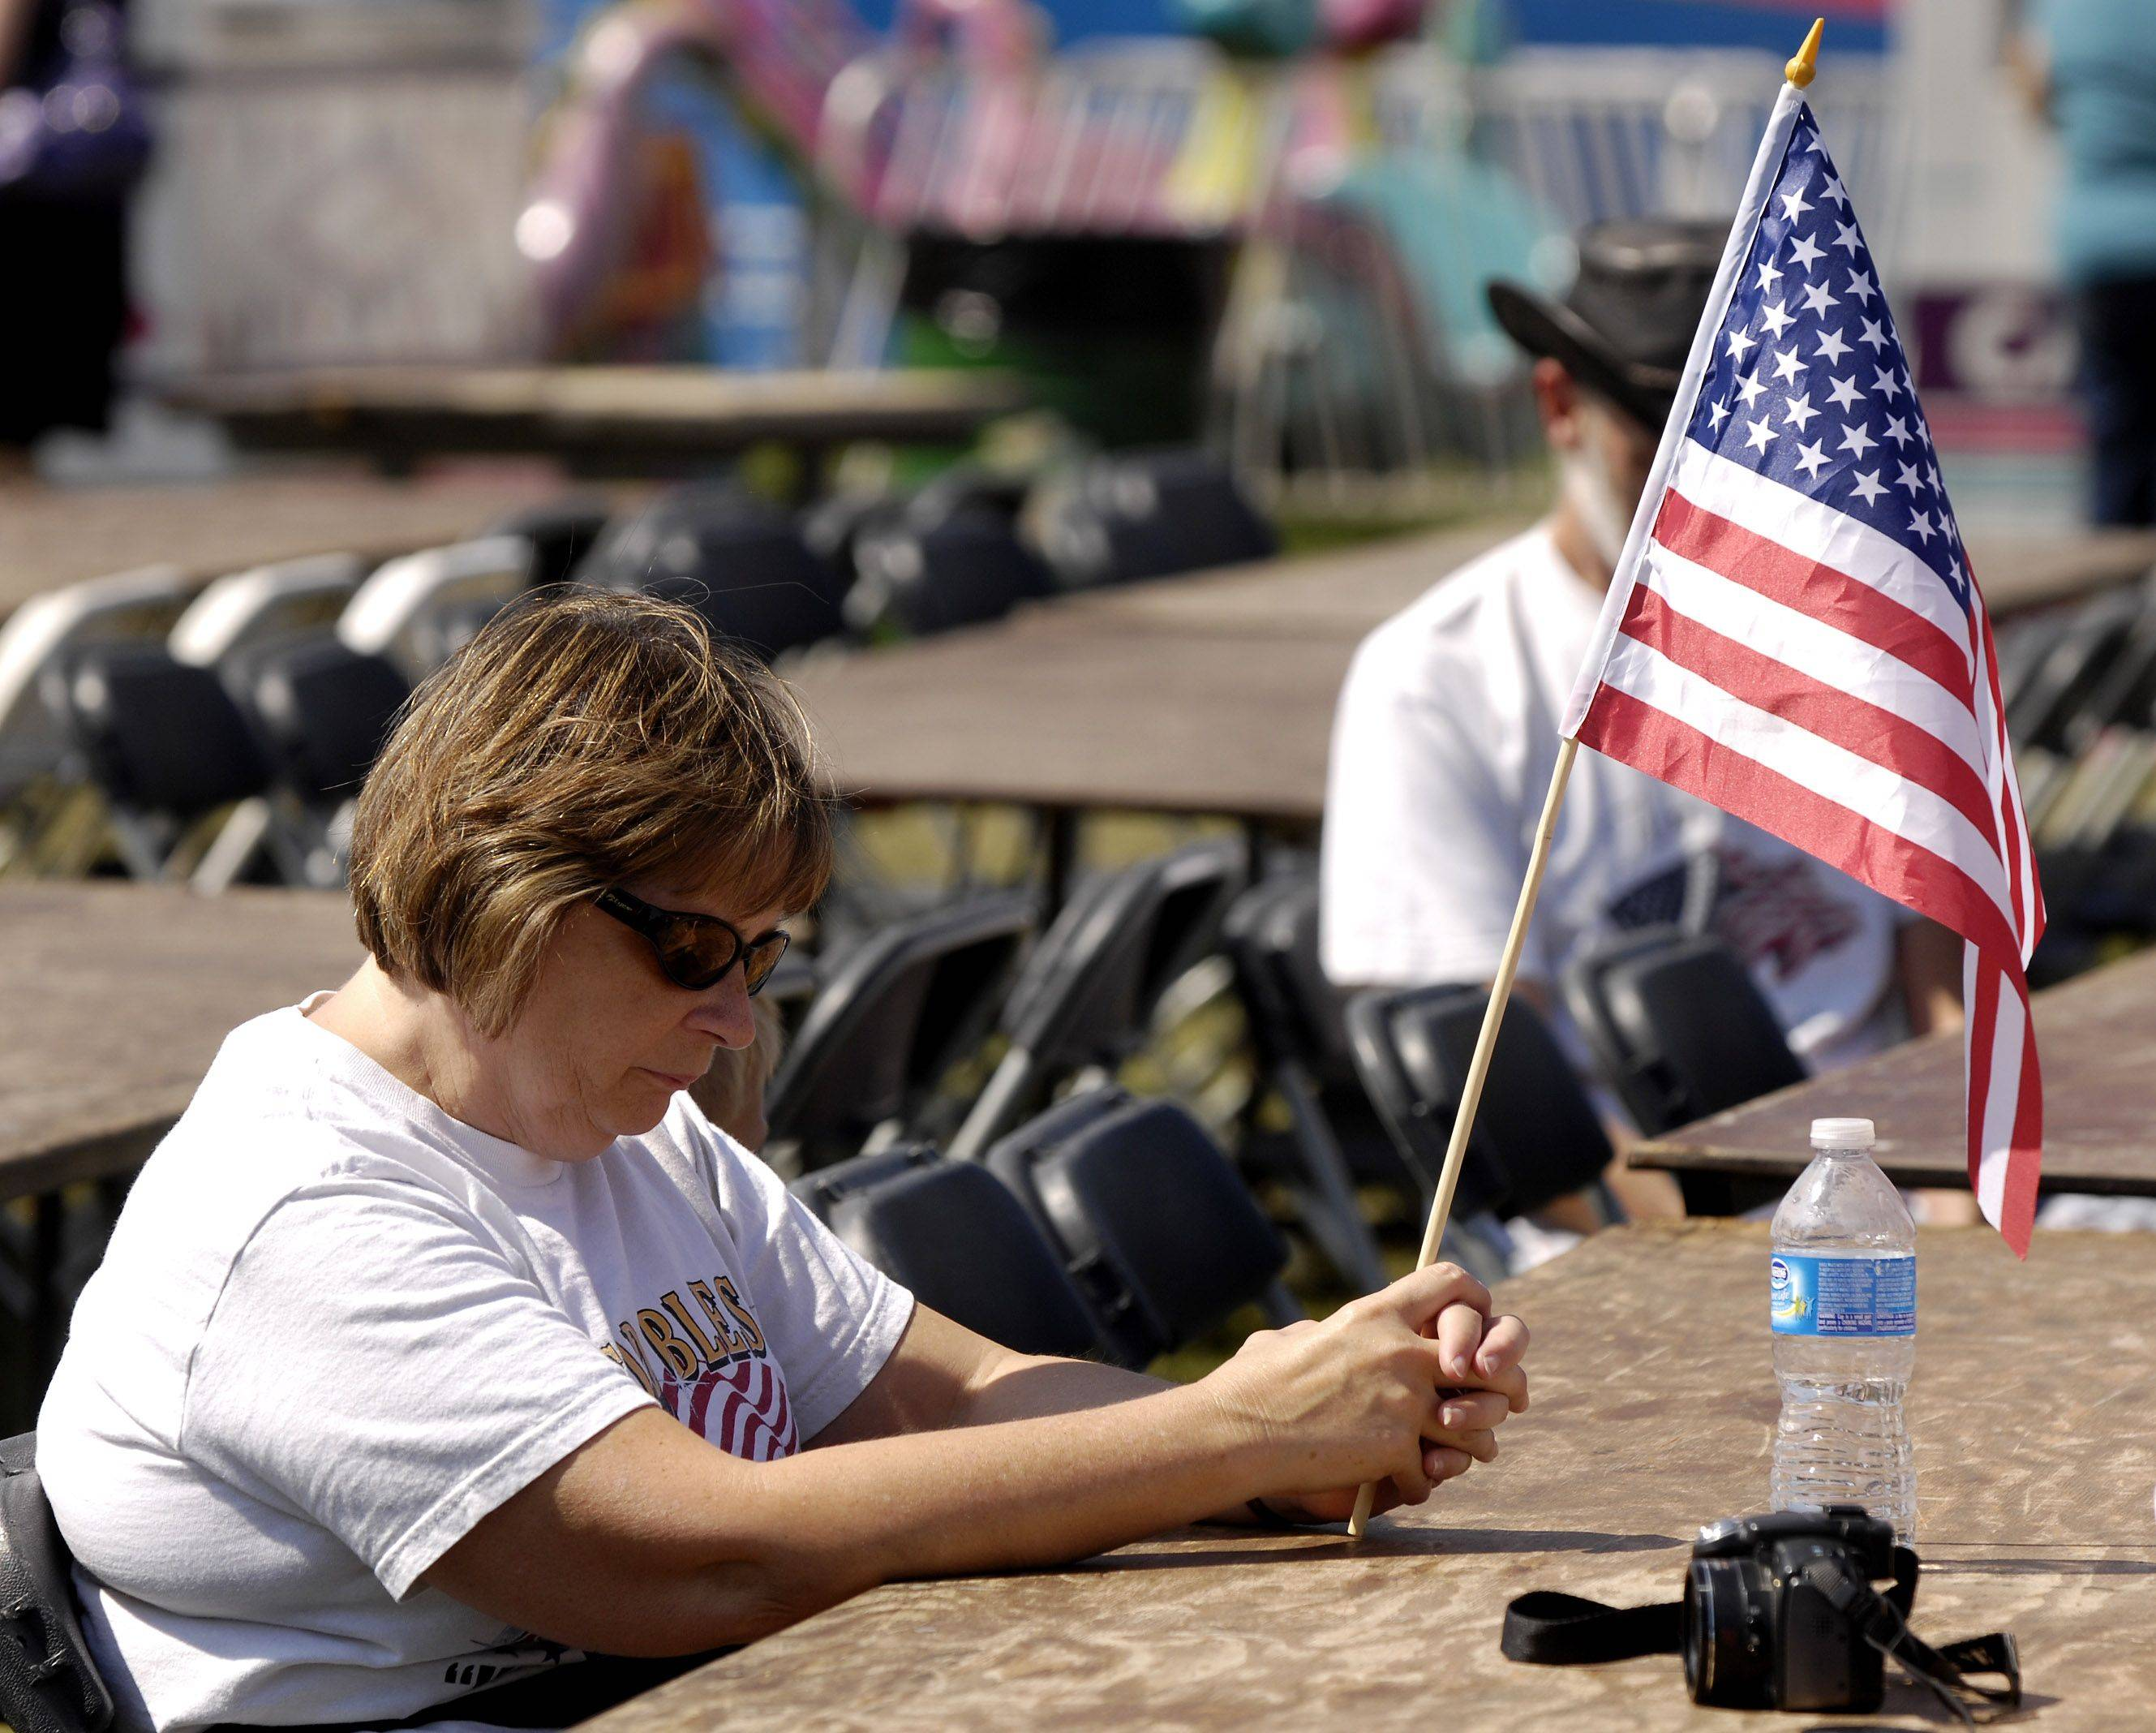 Cindy Matuszak of Bensenville bows her head during a moment of silence at the Villa Park September 11th Anniversary Commemoration Ceremony Sunday.